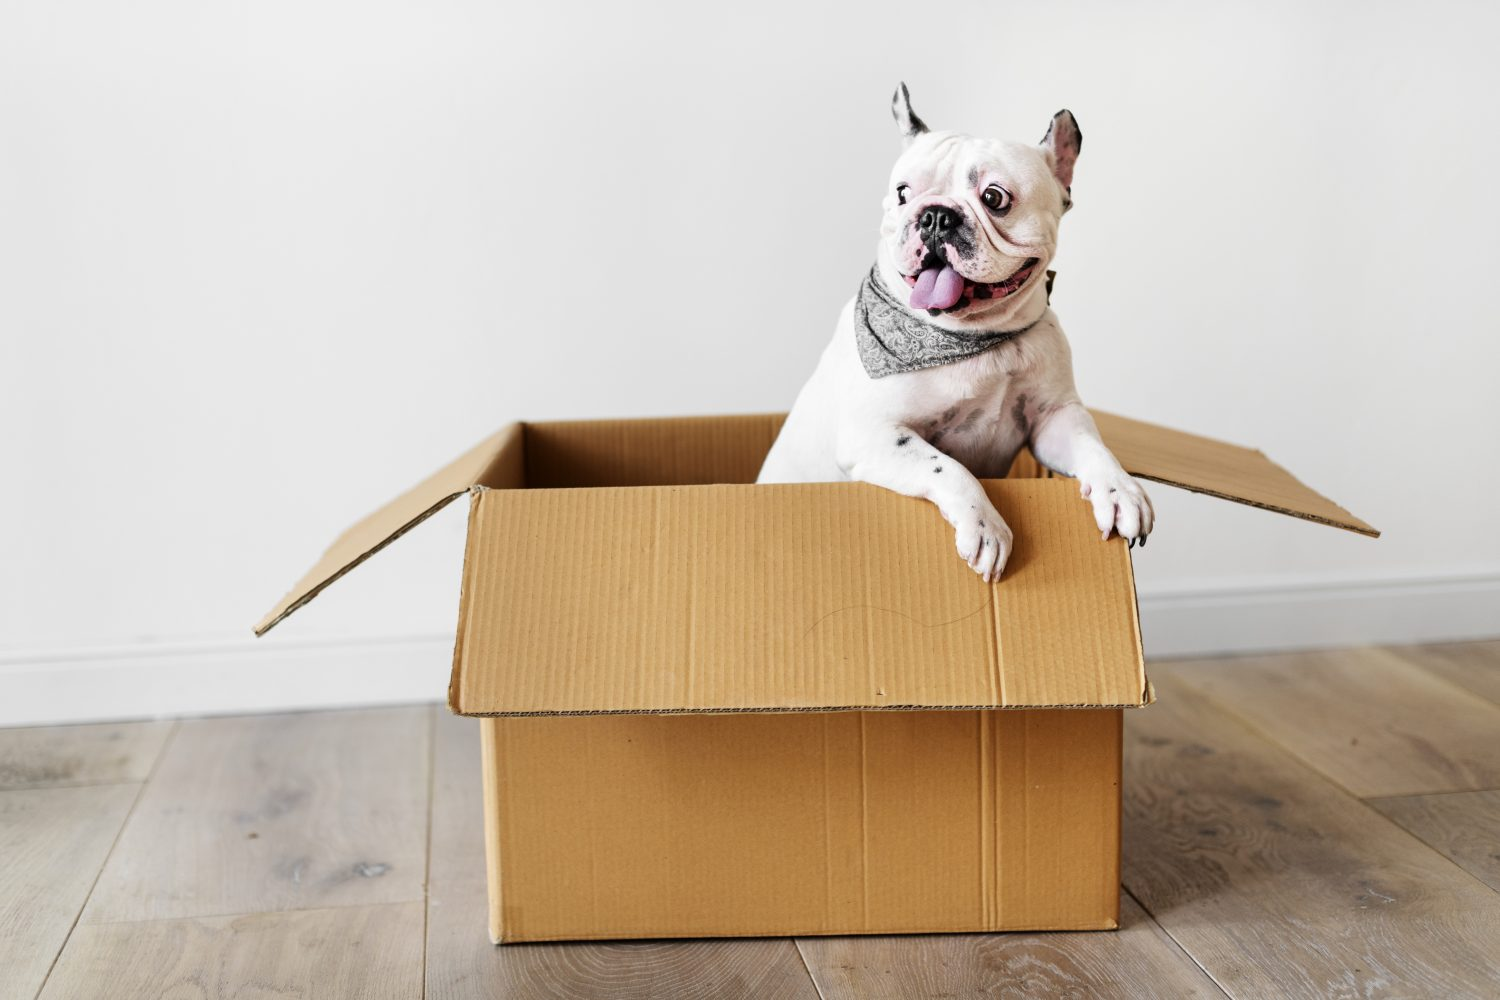 A white spotted dog in a cardboard box